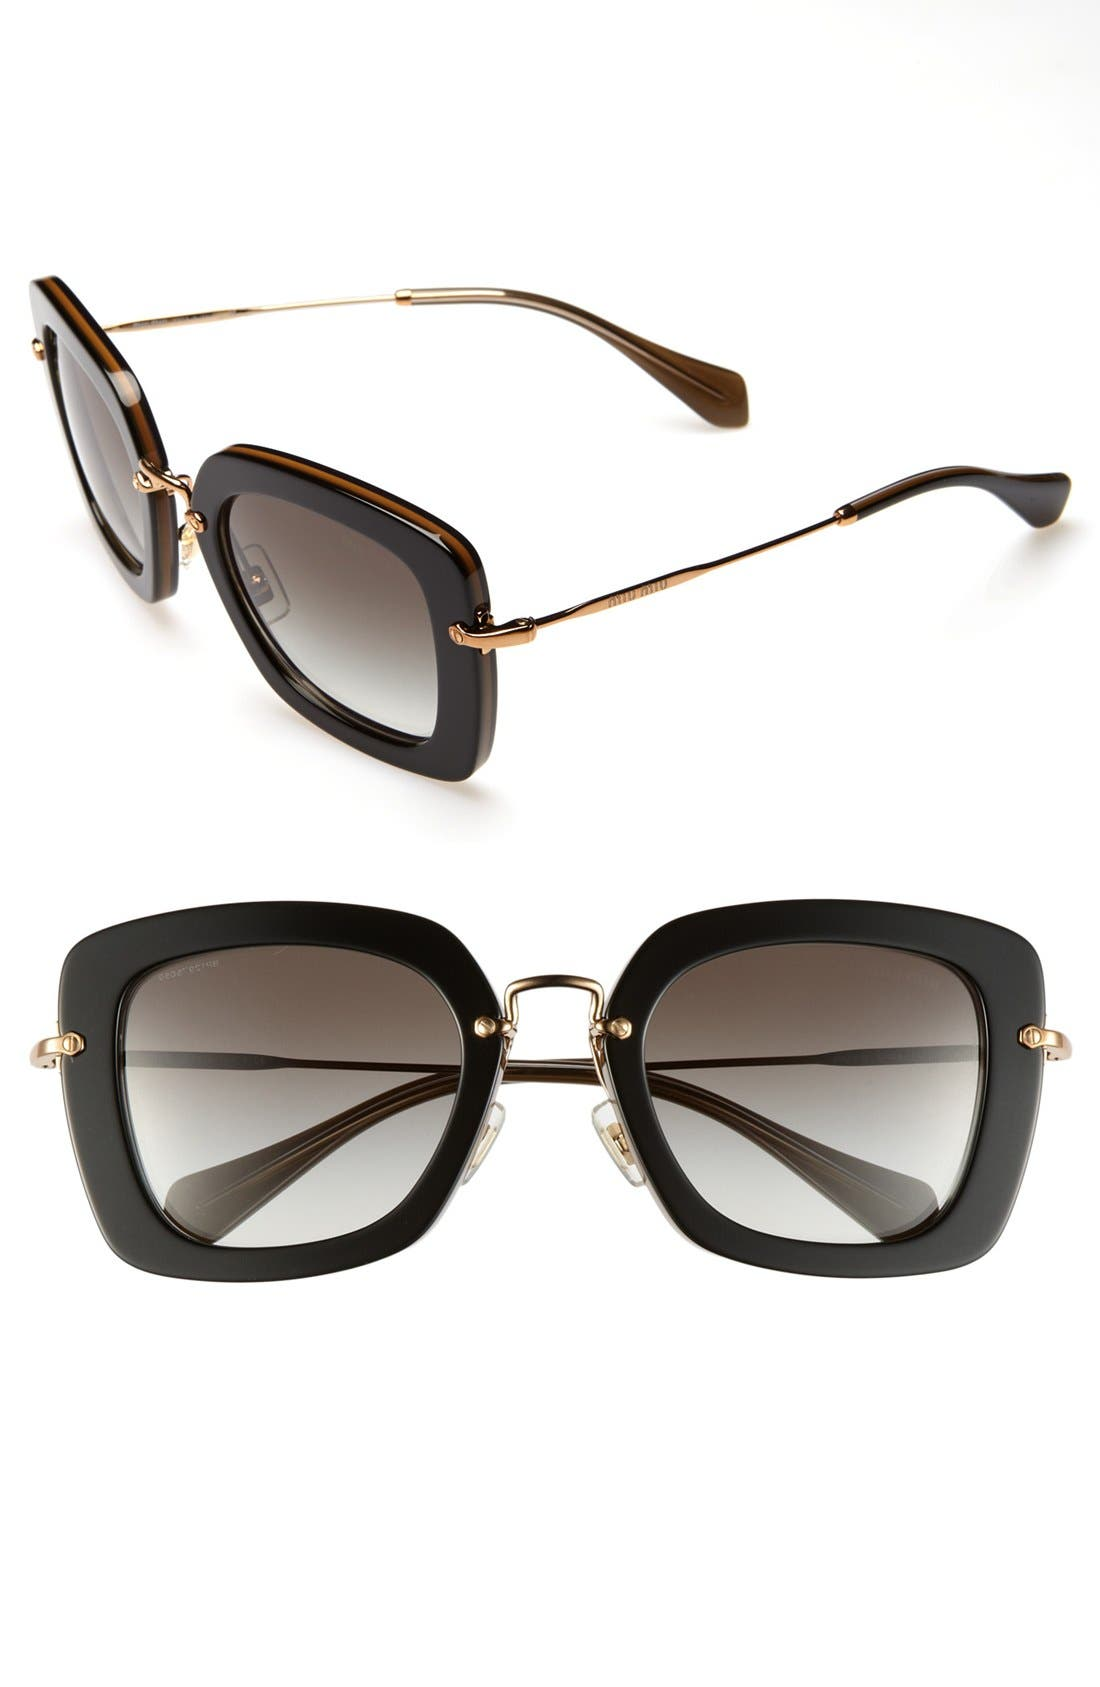 Main Image - Miu Miu 52mm Retro Sunglasses